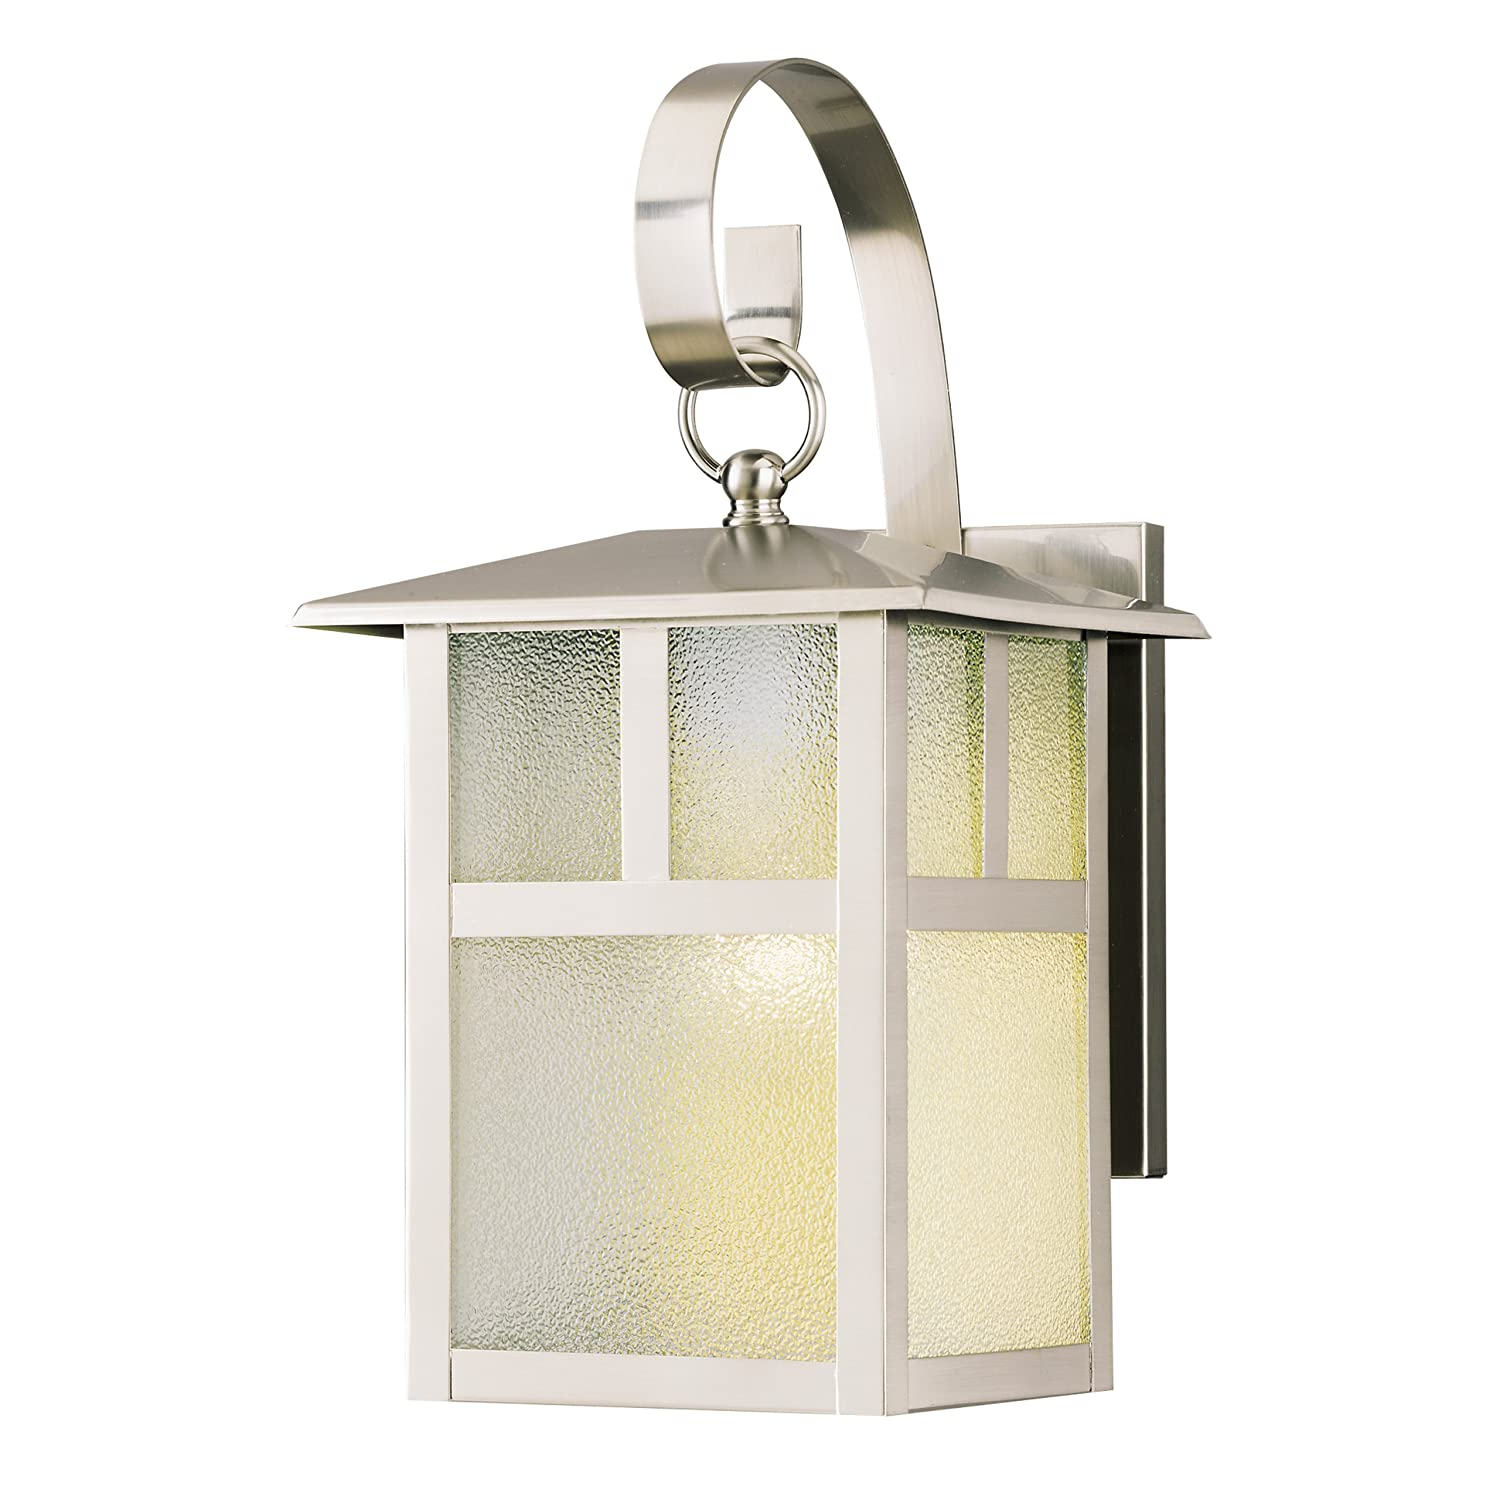 Com Westinghouse 6991900 One Light Exterior Wall Lantern Brushed Nickel Finish On Steel With Clear Textured Glass Panels Home Improvement